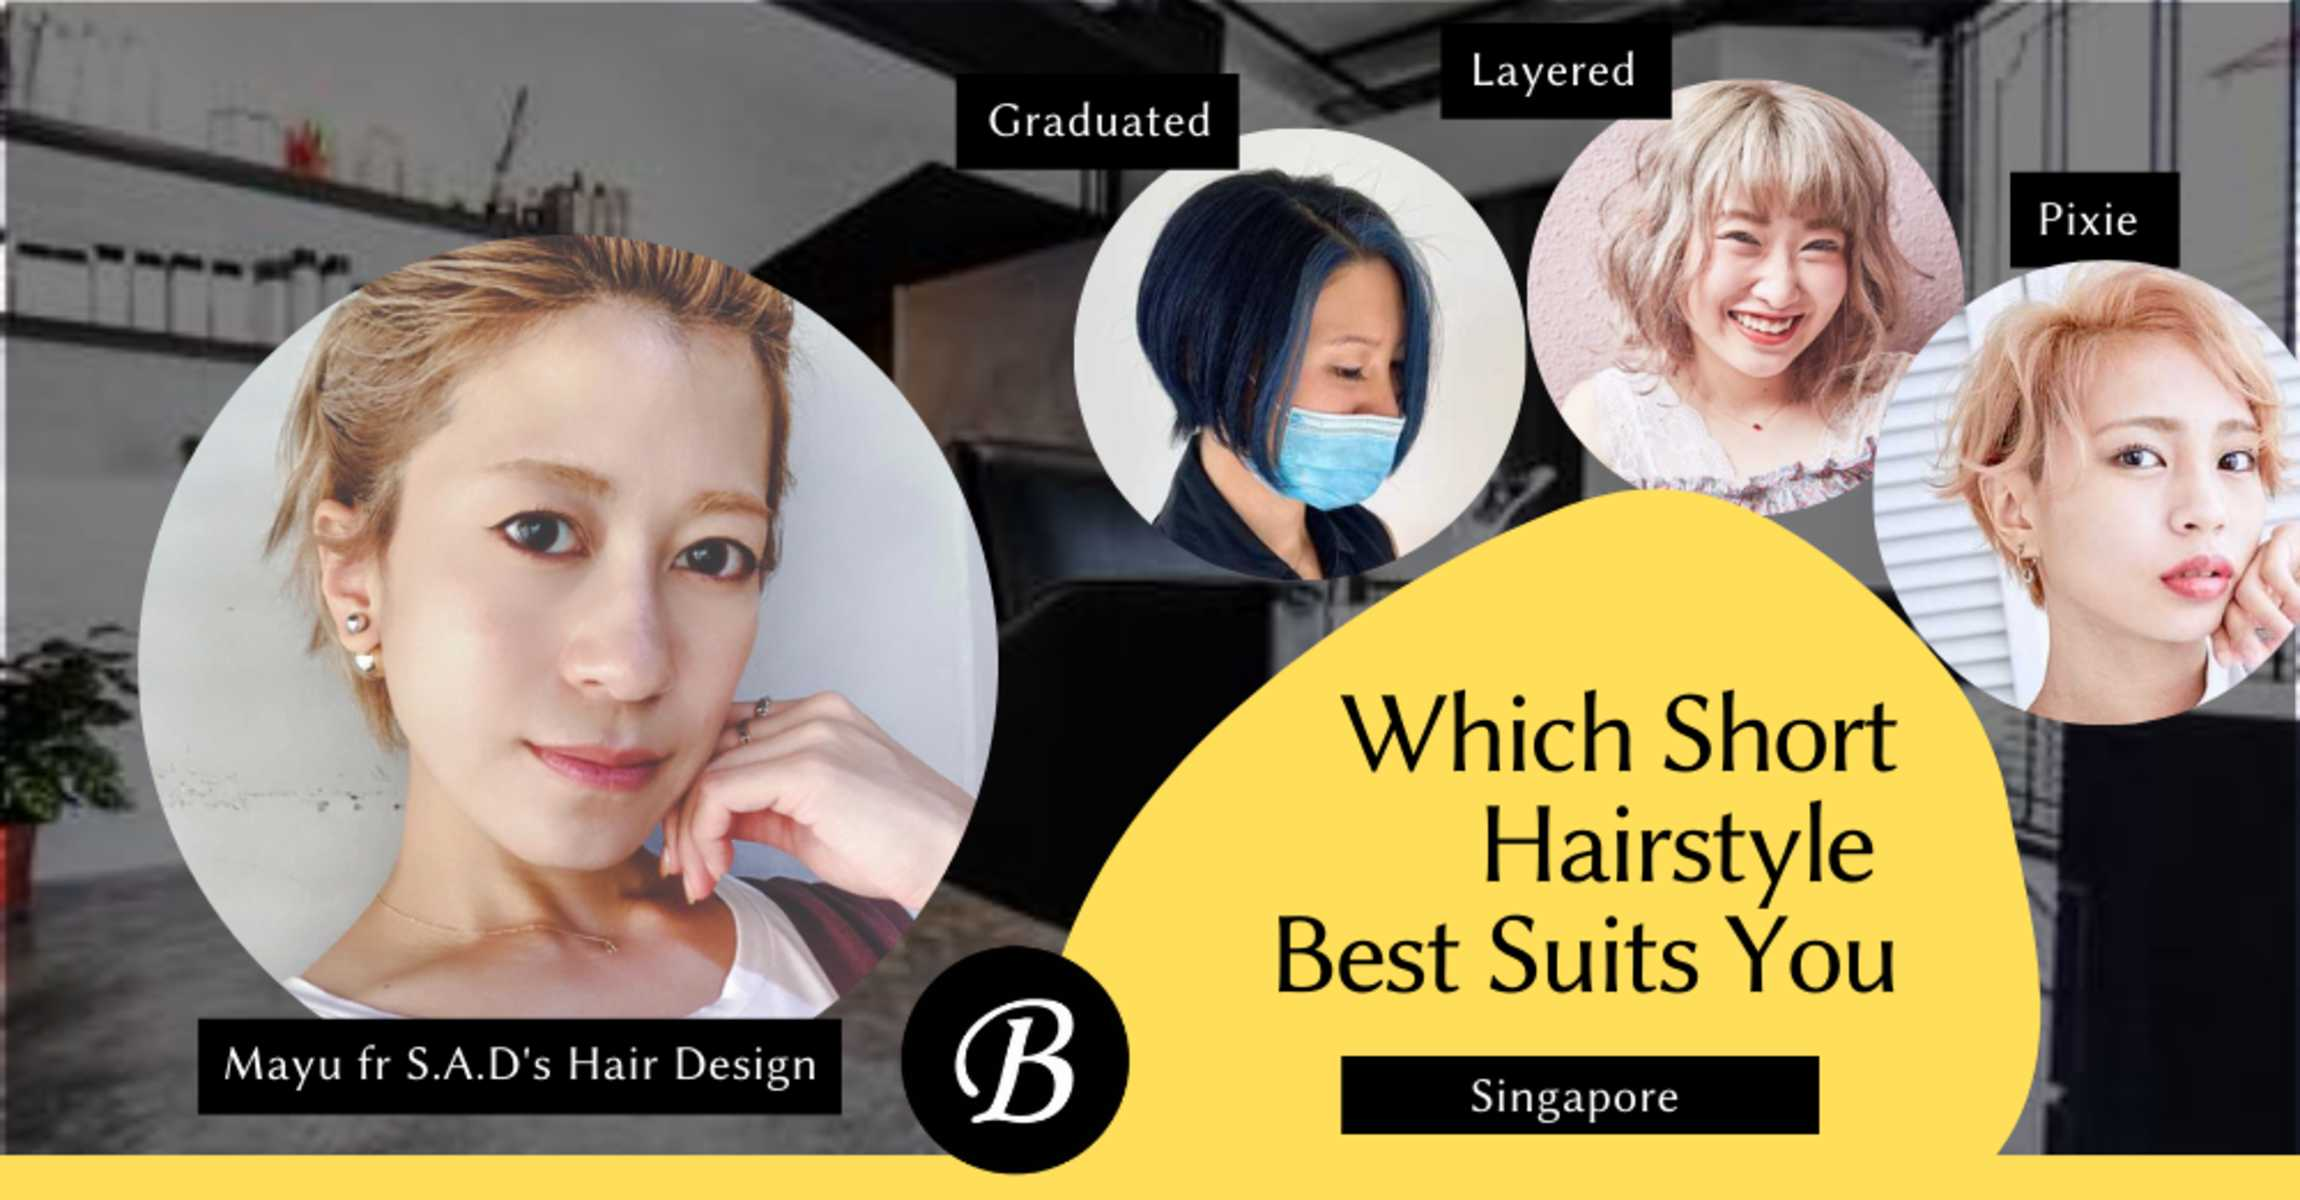 Do Short Hairstyles Suit You? This Haircut Specialist Share The Optimal Hairstyle According to the Size Balance Control Hair Theory